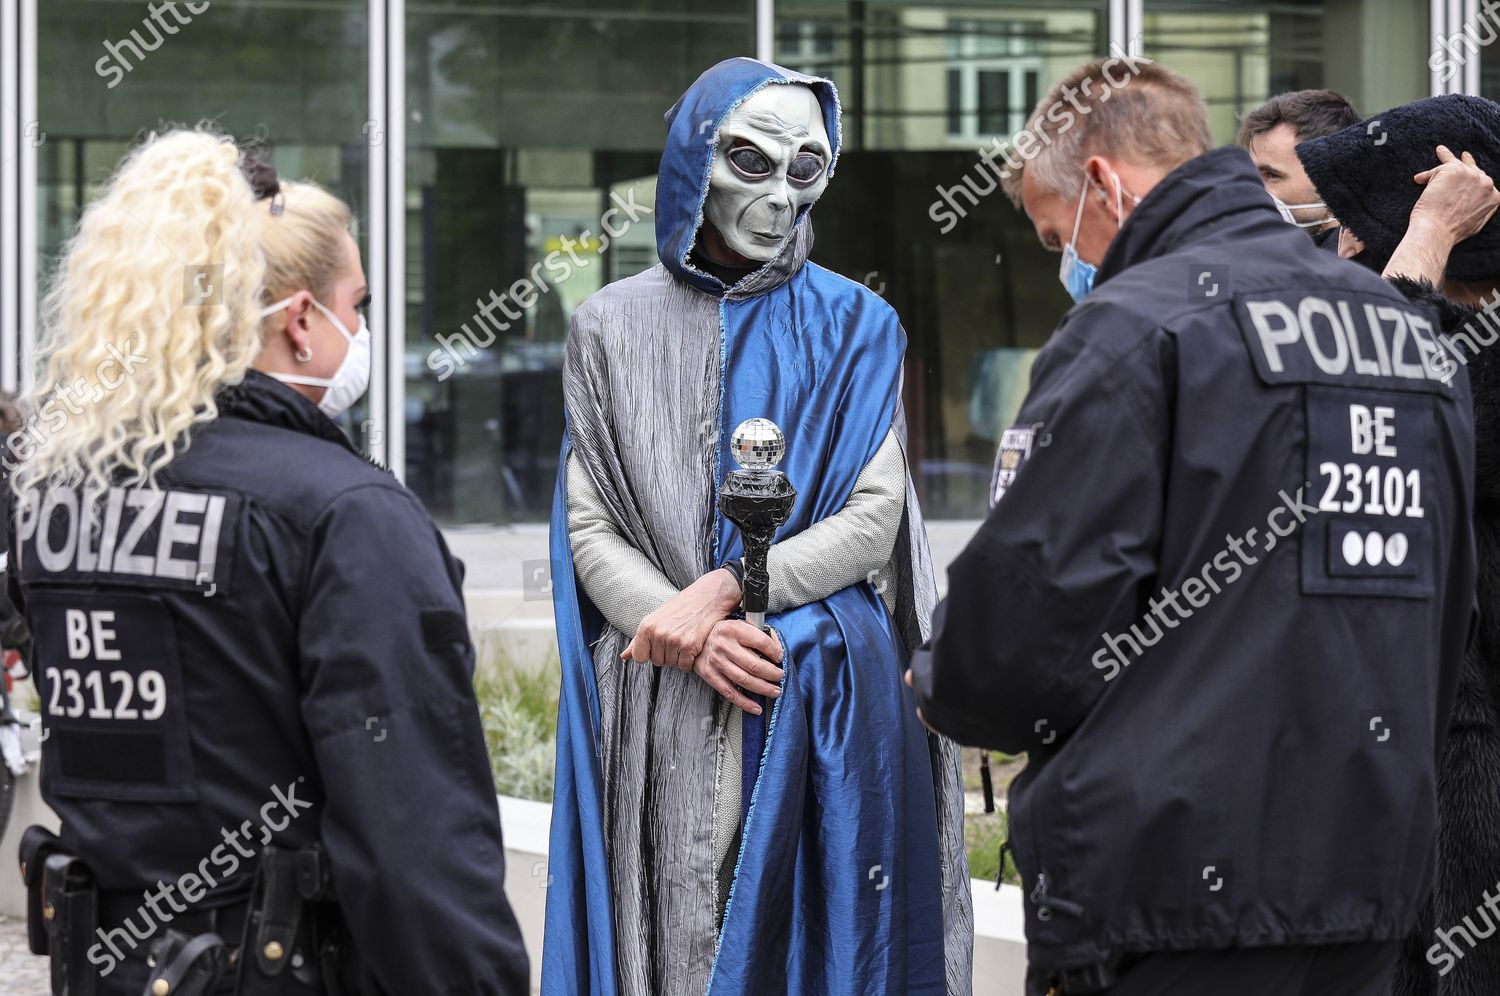 Halloween In Germany 2020 German police officers question performer alien costume Editorial